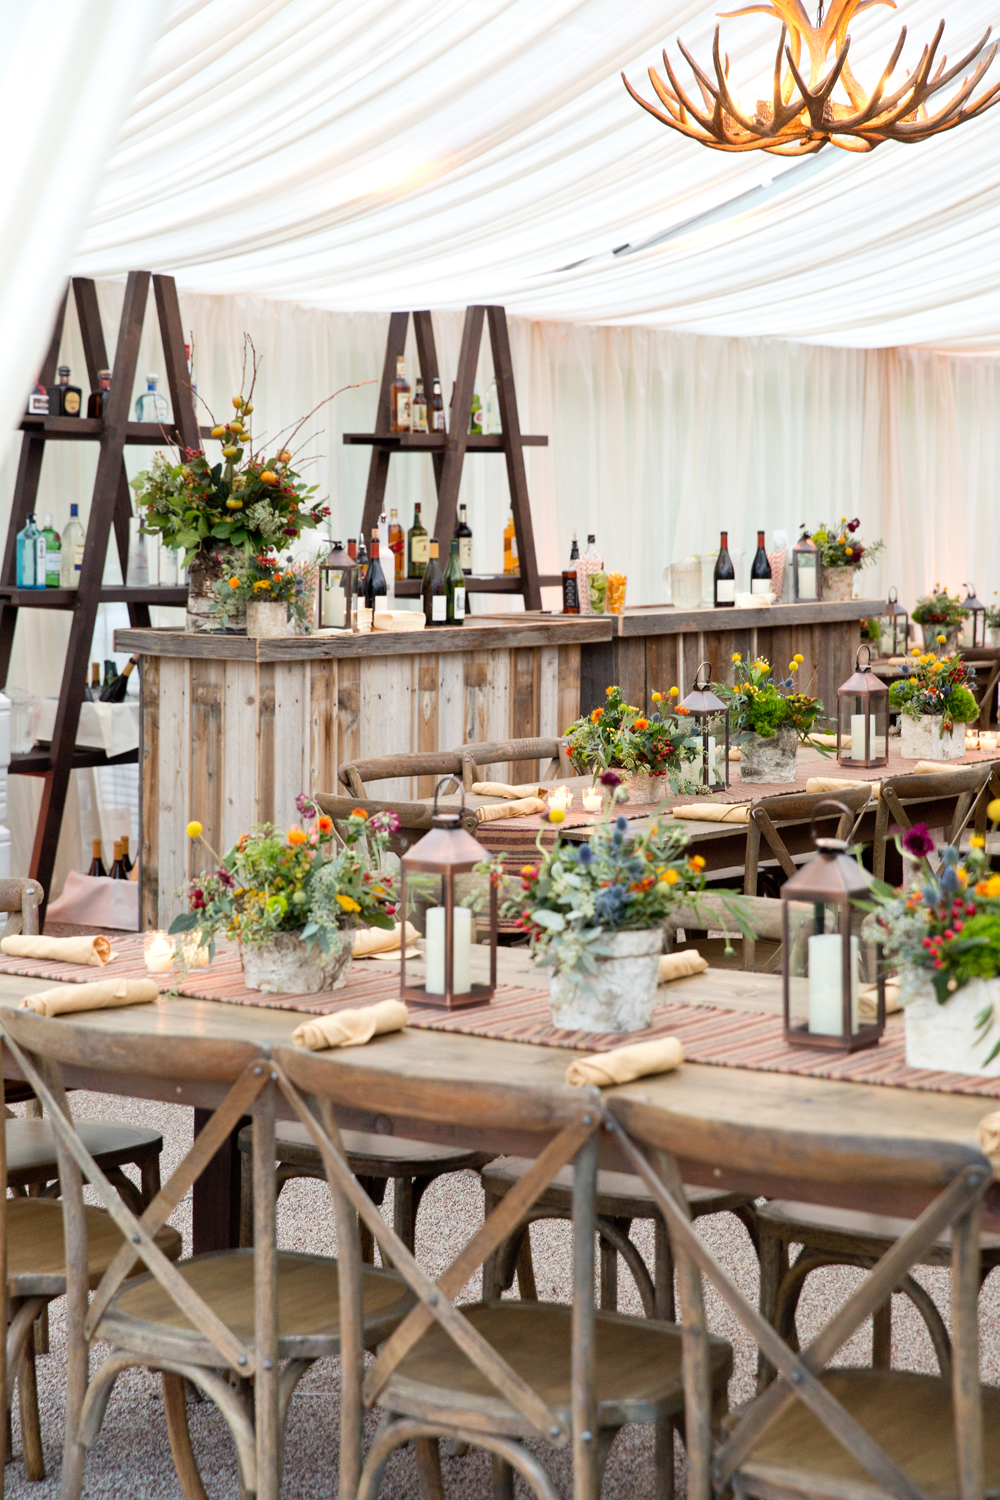 Farm tables with rustic flower arrangements and lanterns